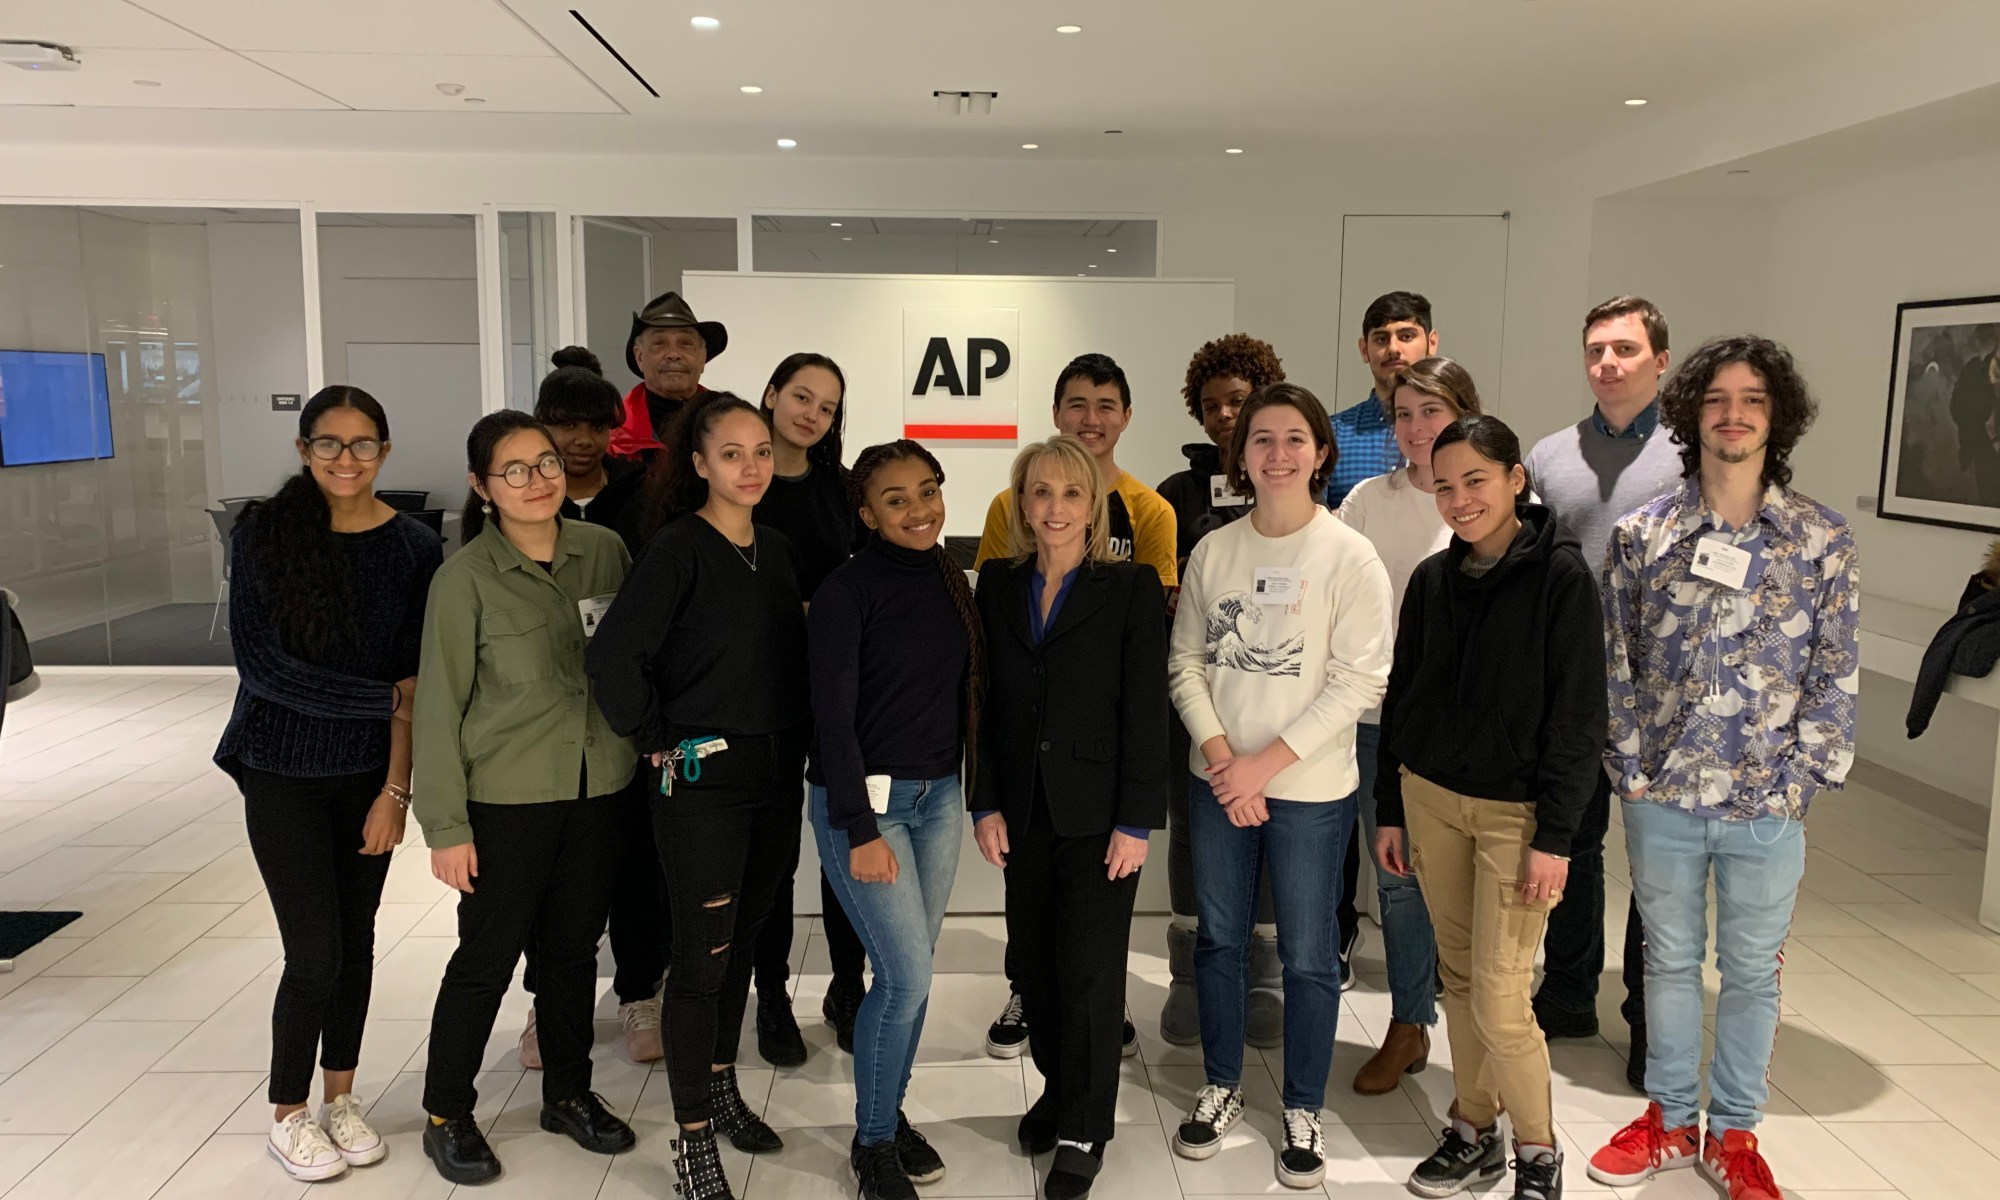 Introduction to Journalism Visits the Associated Press